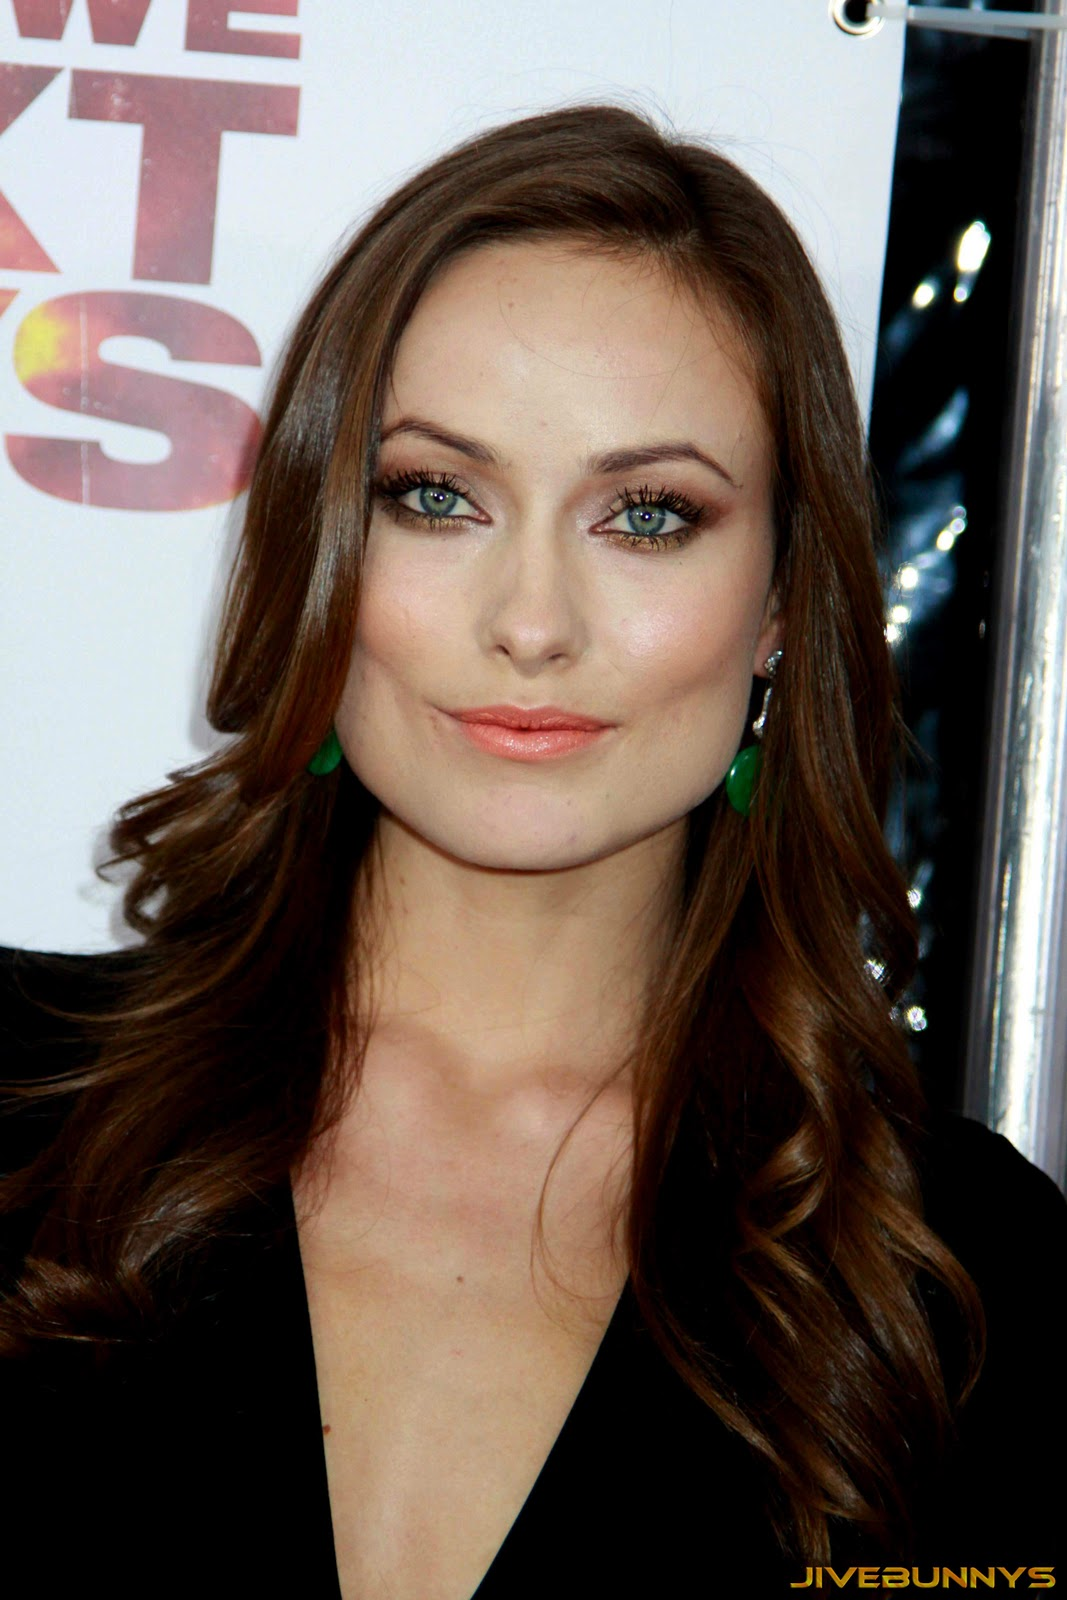 Olivia Wilde Profile And New Pictures 2013: Olivia Wilde Special Pictures (29)